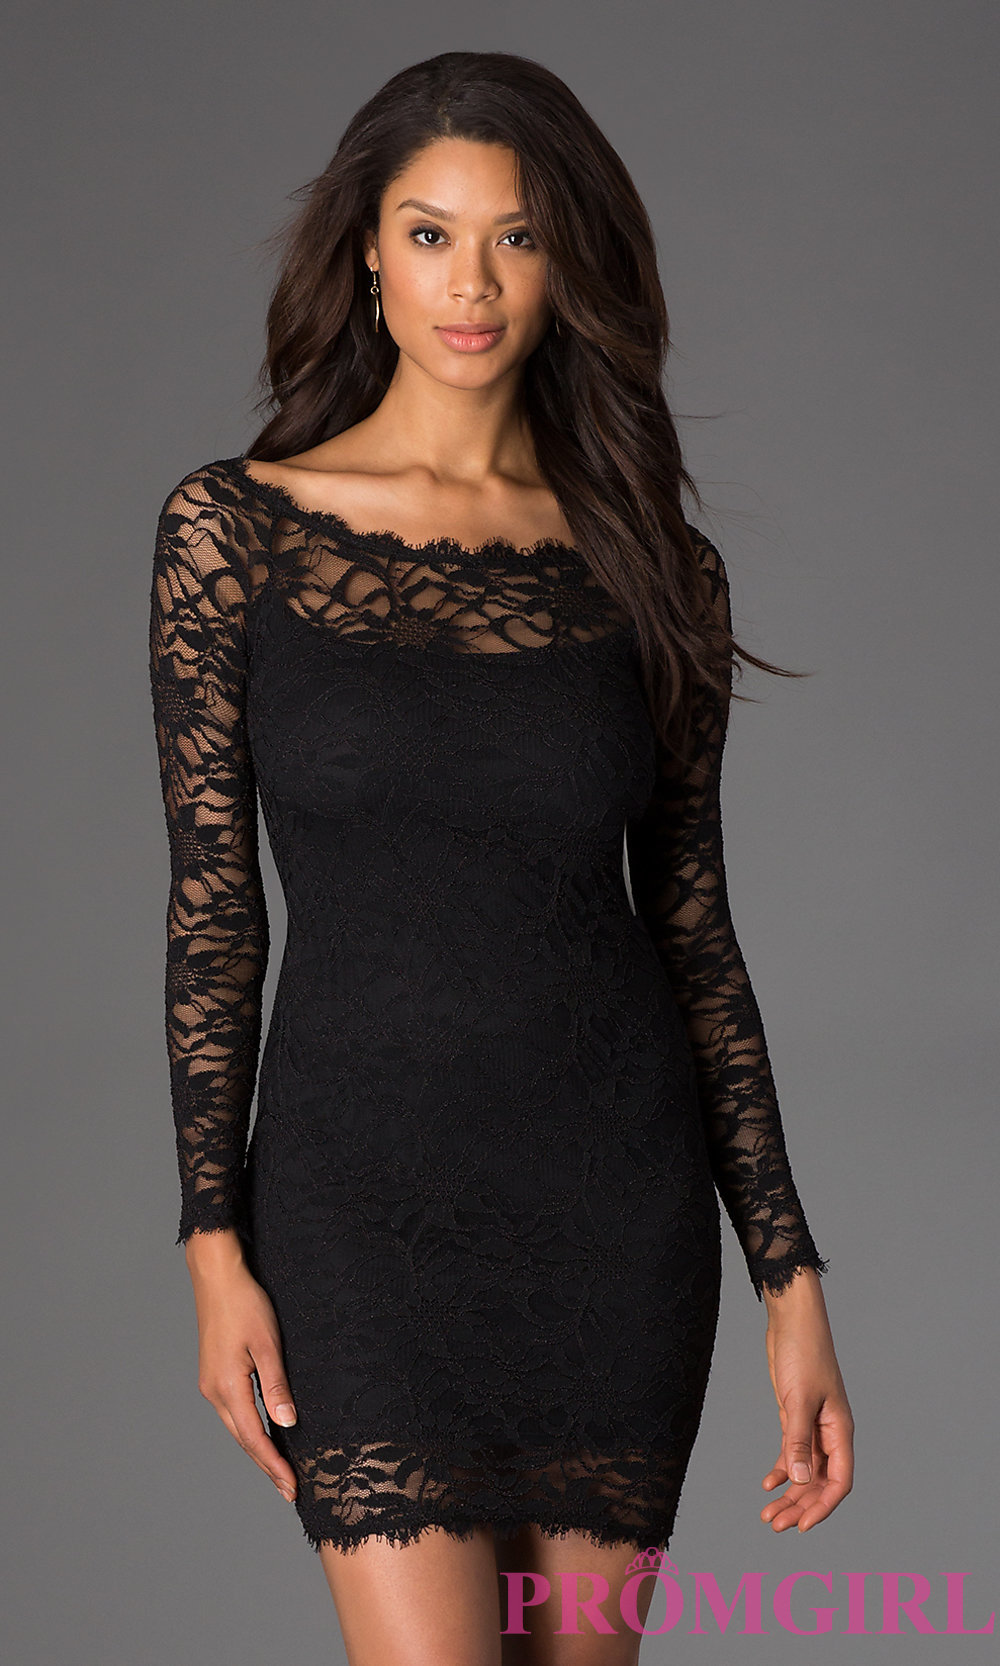 black lace dress hover to zoom · image of short black lace long sleeve dress ... ZASKHNA